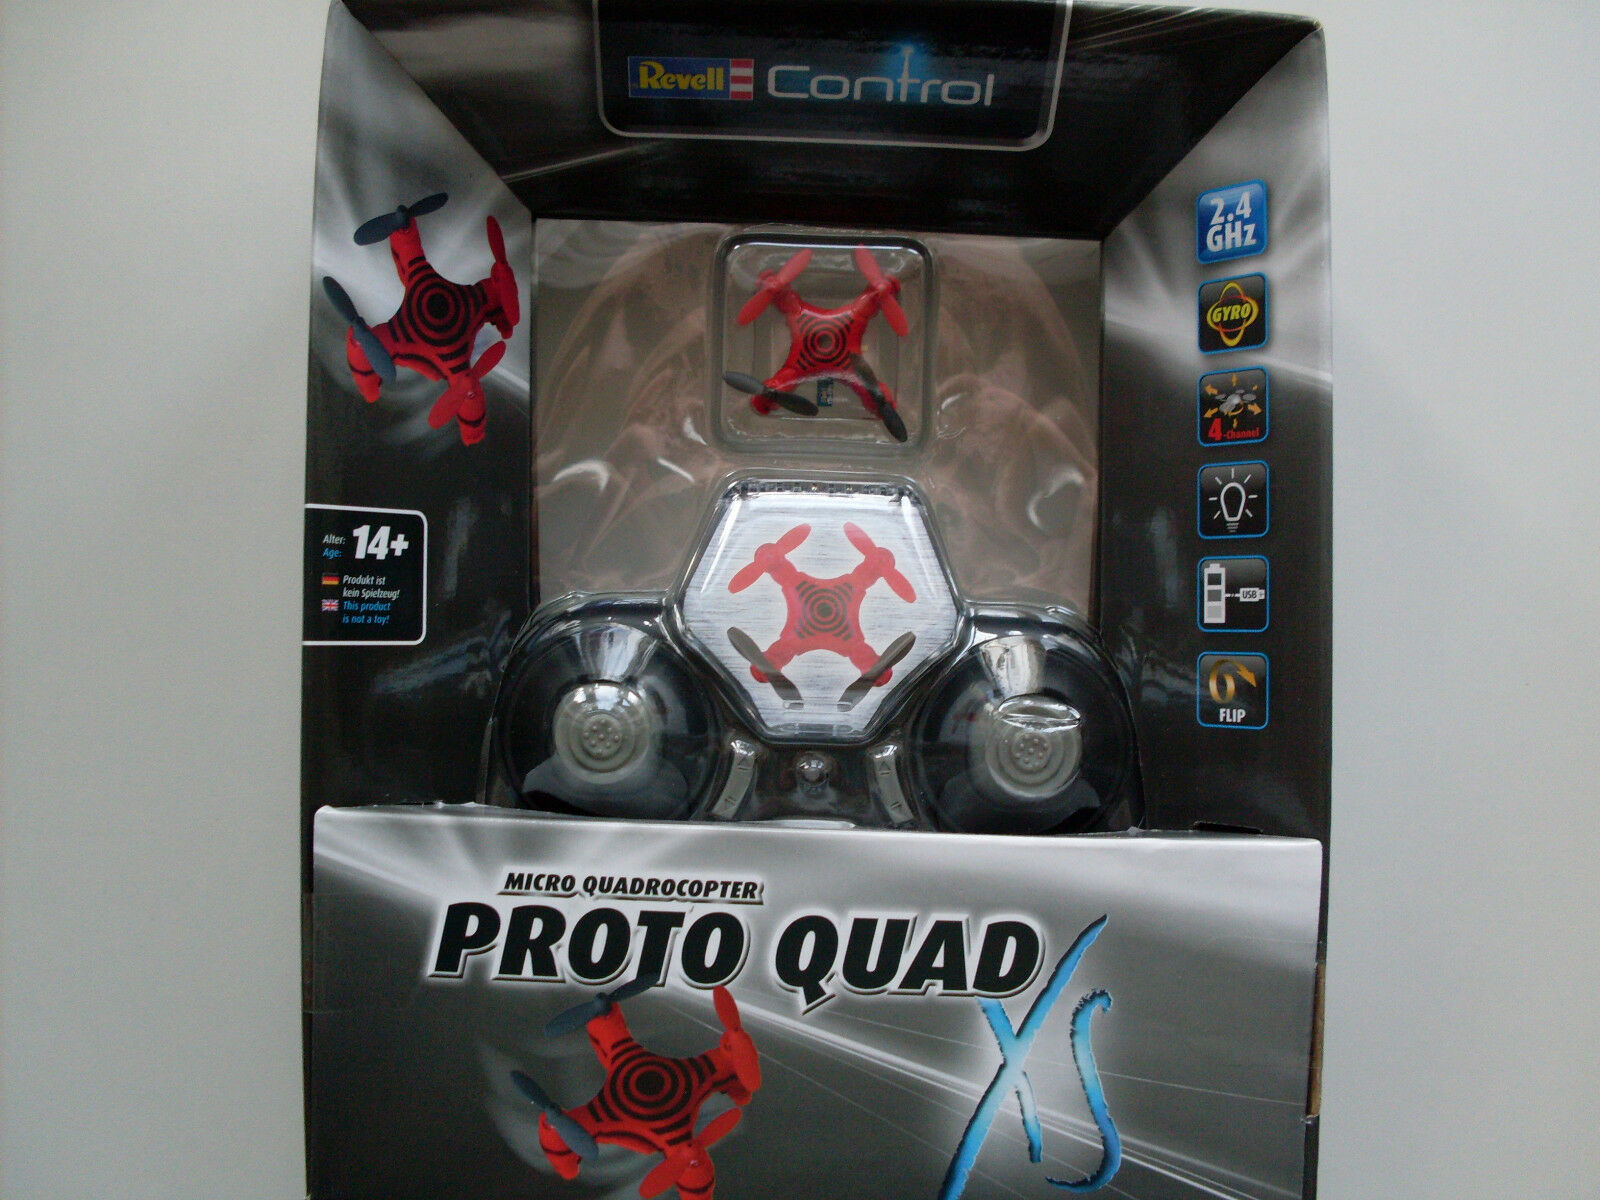 Predo Quad Red, Quadrocopter 4CH 2,4 GHz, Revell Control Helicopter, 23933